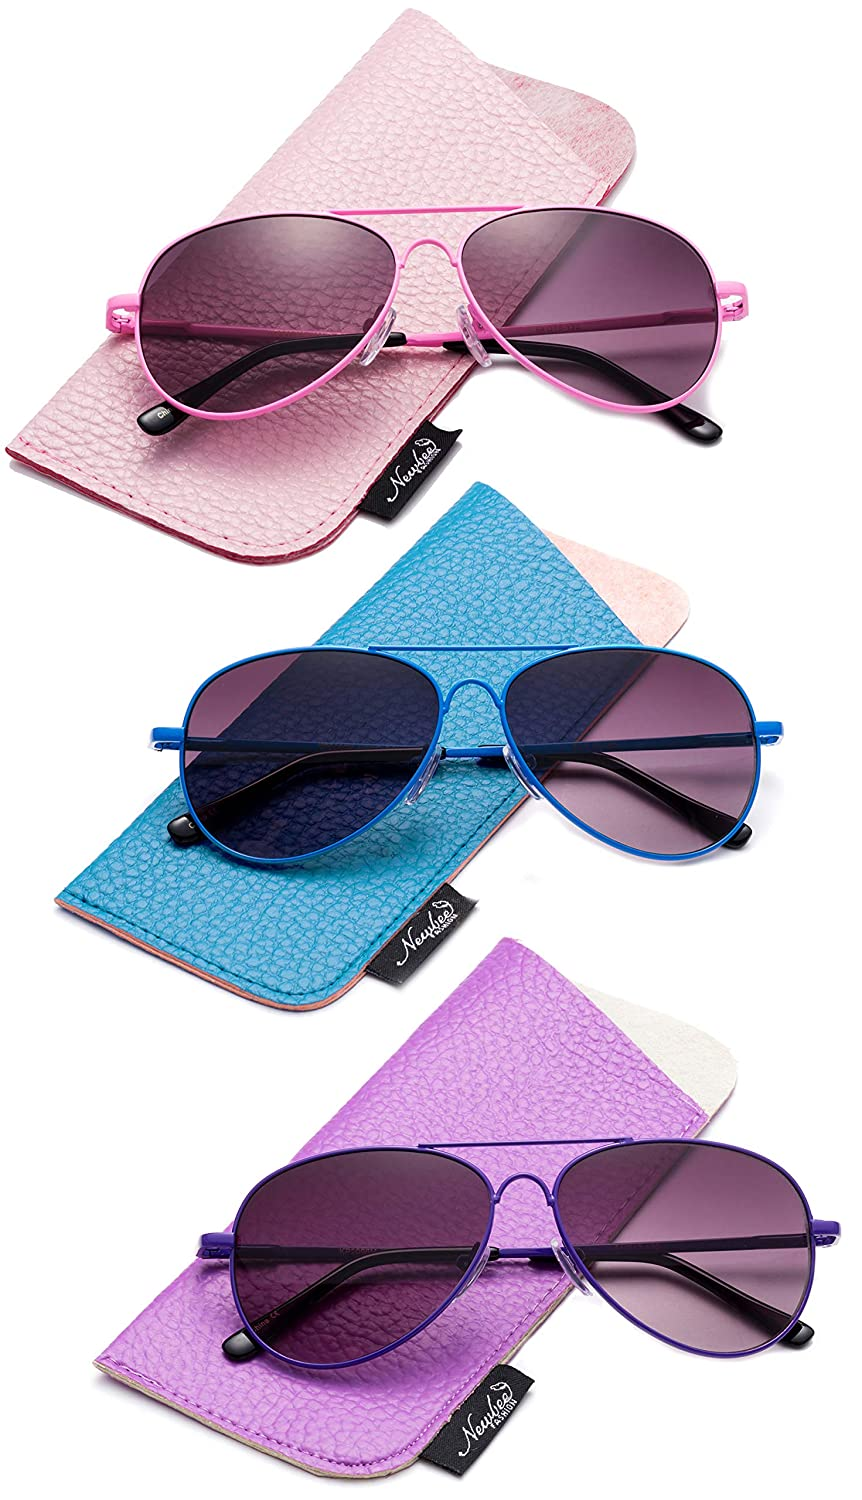 Kids Girls Colored Aviator Sunglasses for Kids UV Protection Spring Hinge w//Pouch Fashion Aviators for Girls Newbee Fashion